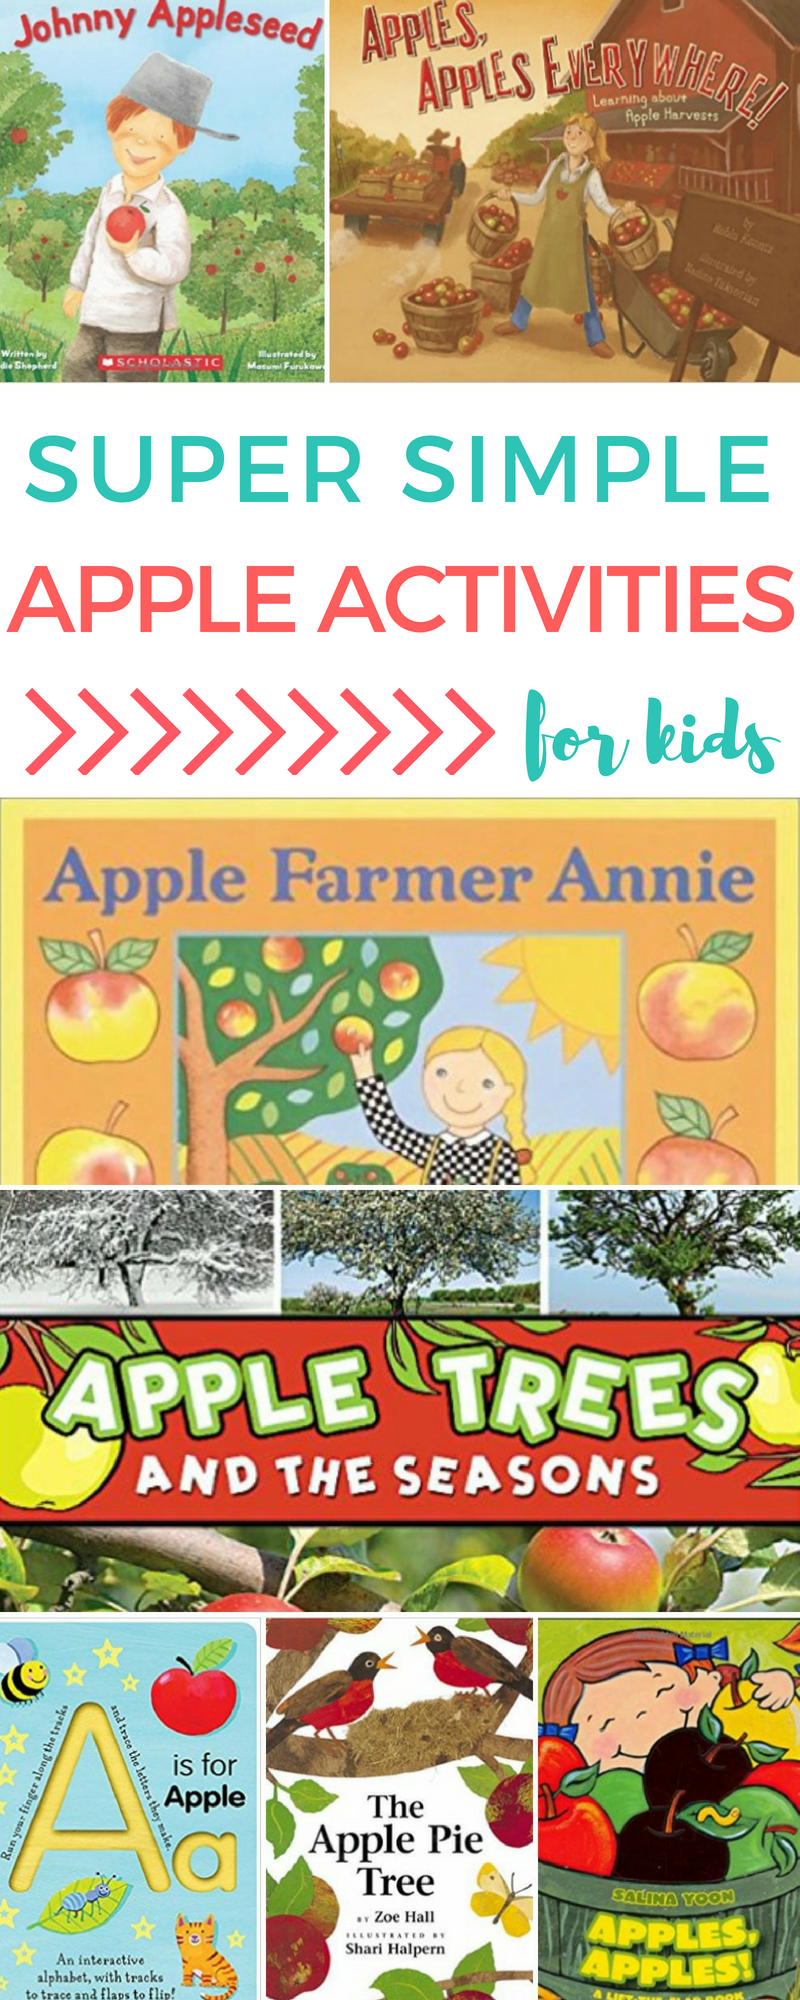 Super Simple Apple Activities for Kids